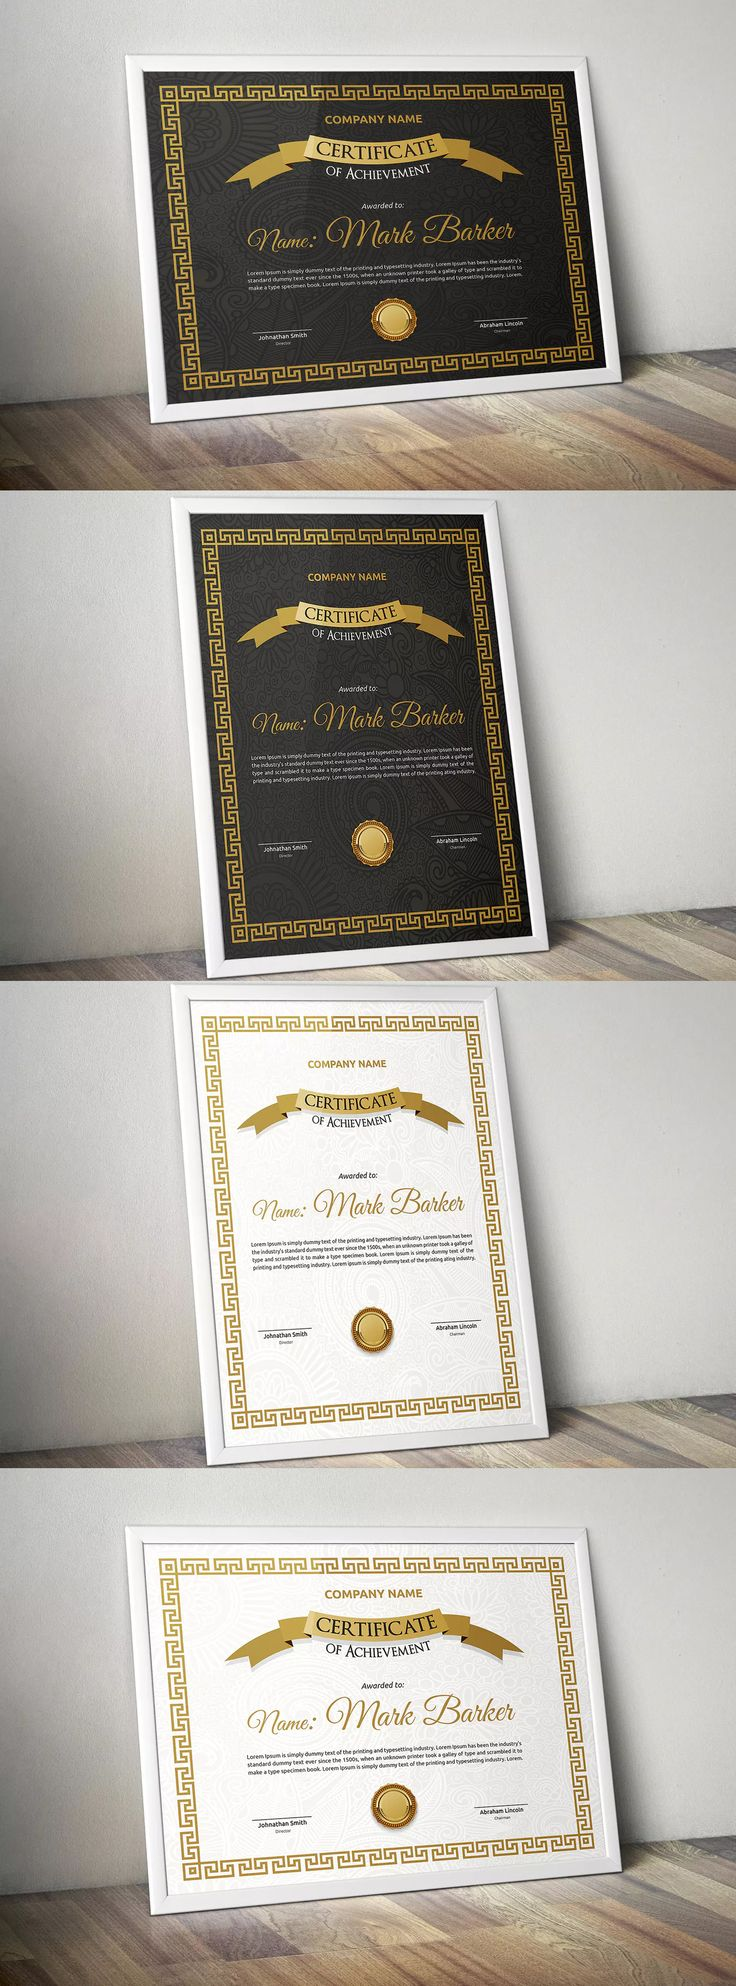 53 best certificate templates images on pinterest certificate template eps yadclub Gallery